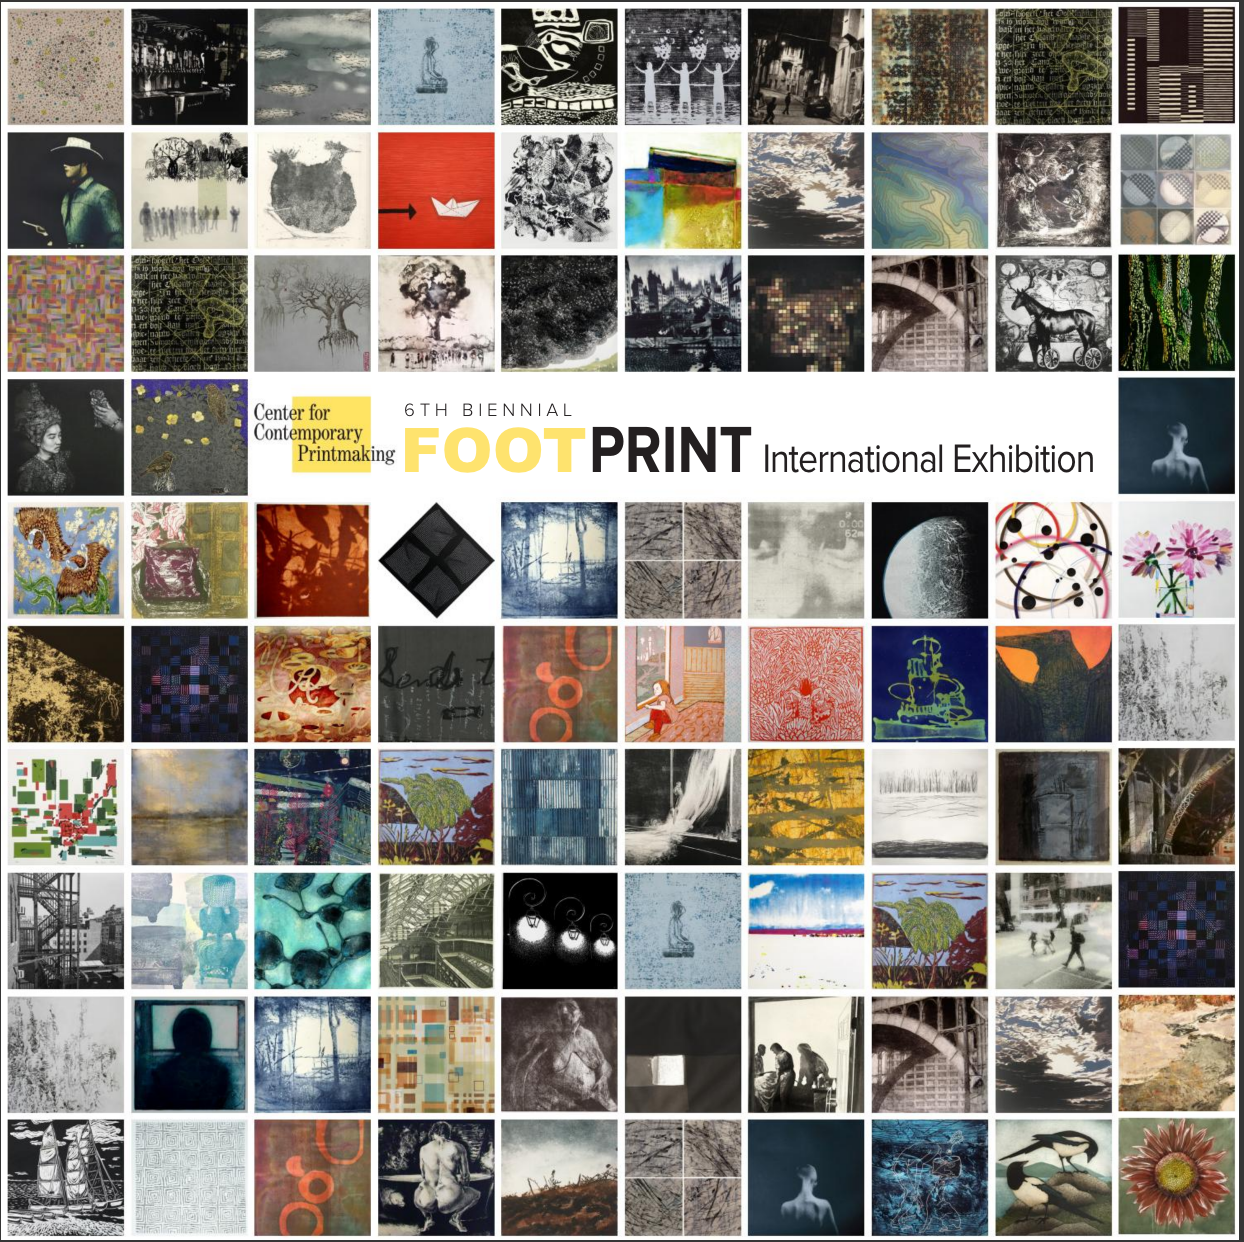 6th Biennial Foot Print International Exhibition    Online Catalogue